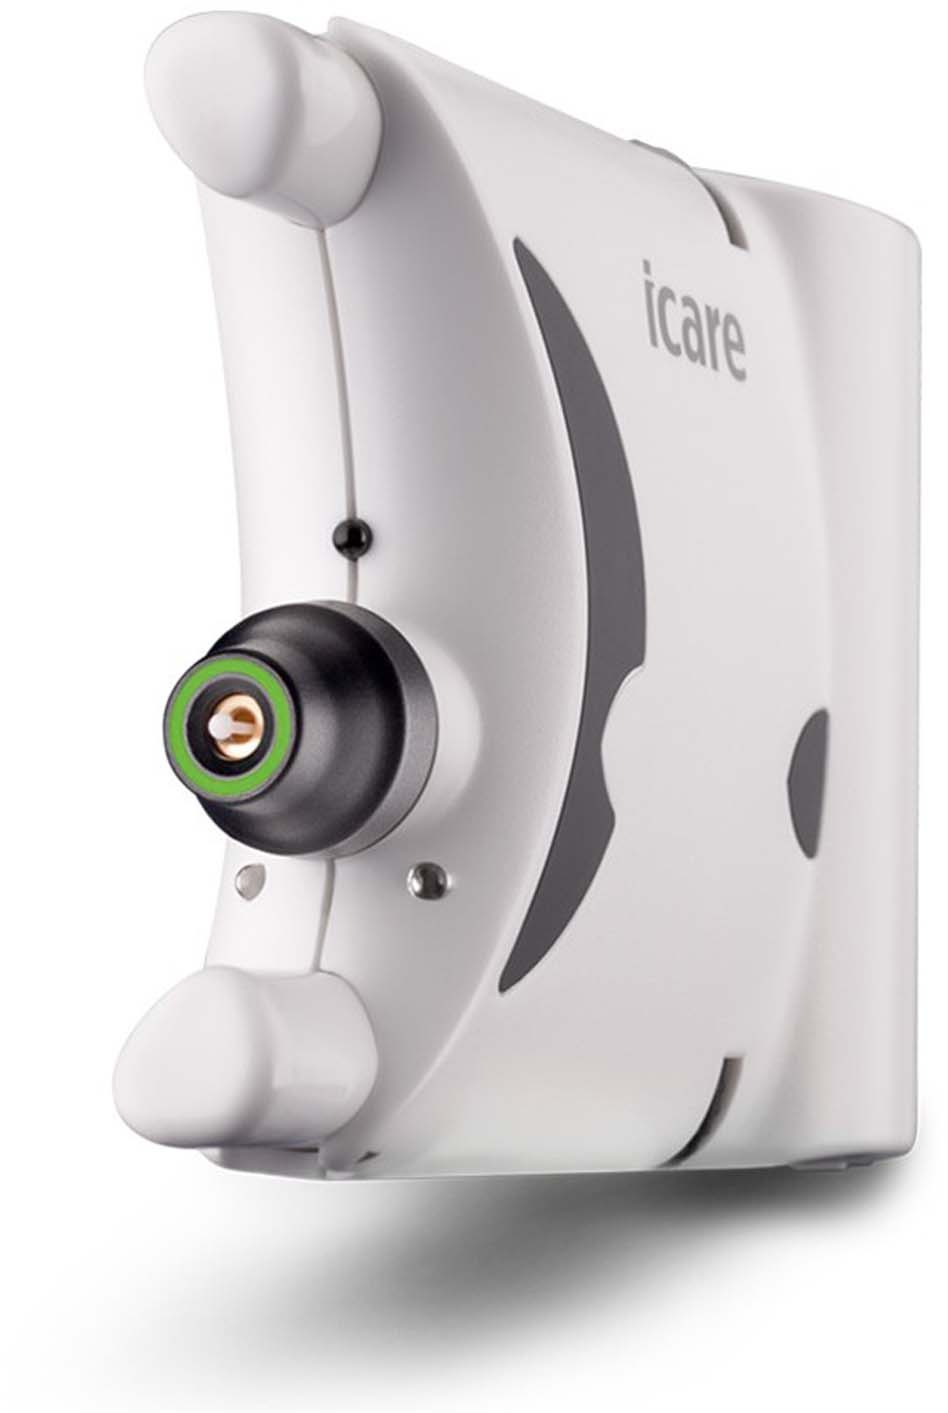 Home monitoring for glaucoma